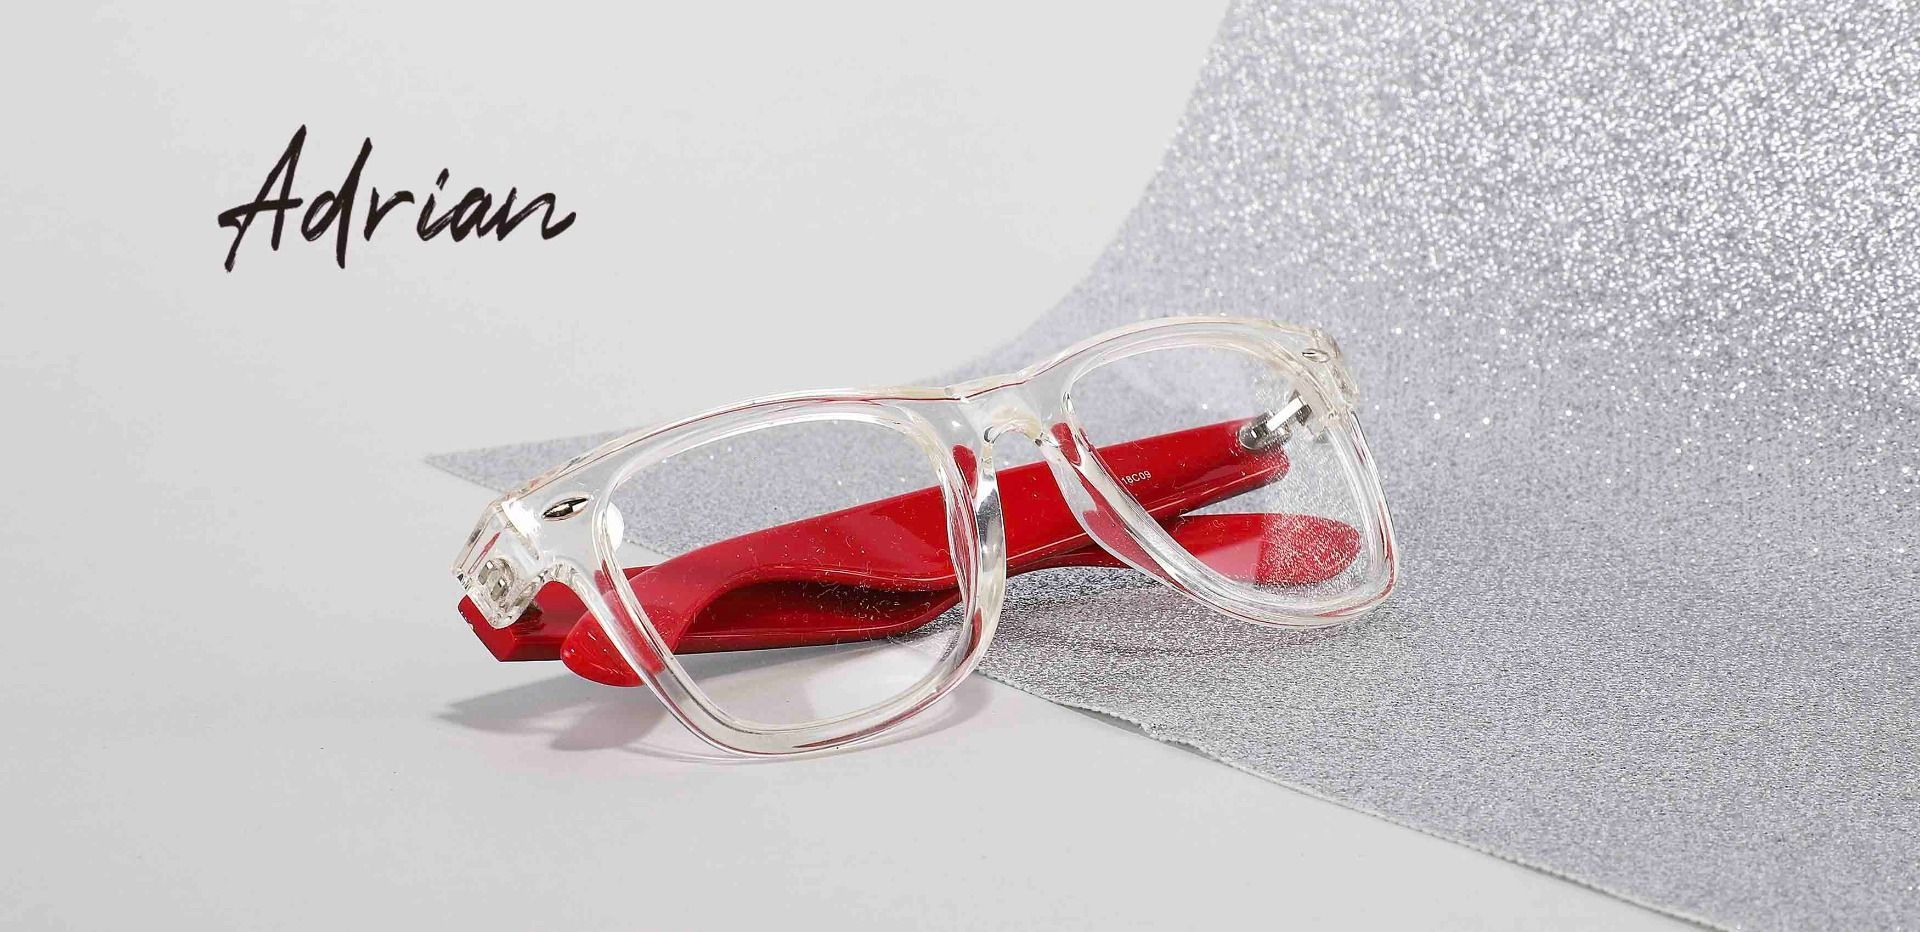 Adrian Square Eyeglasses Frame - The Frame Is Clear And Red